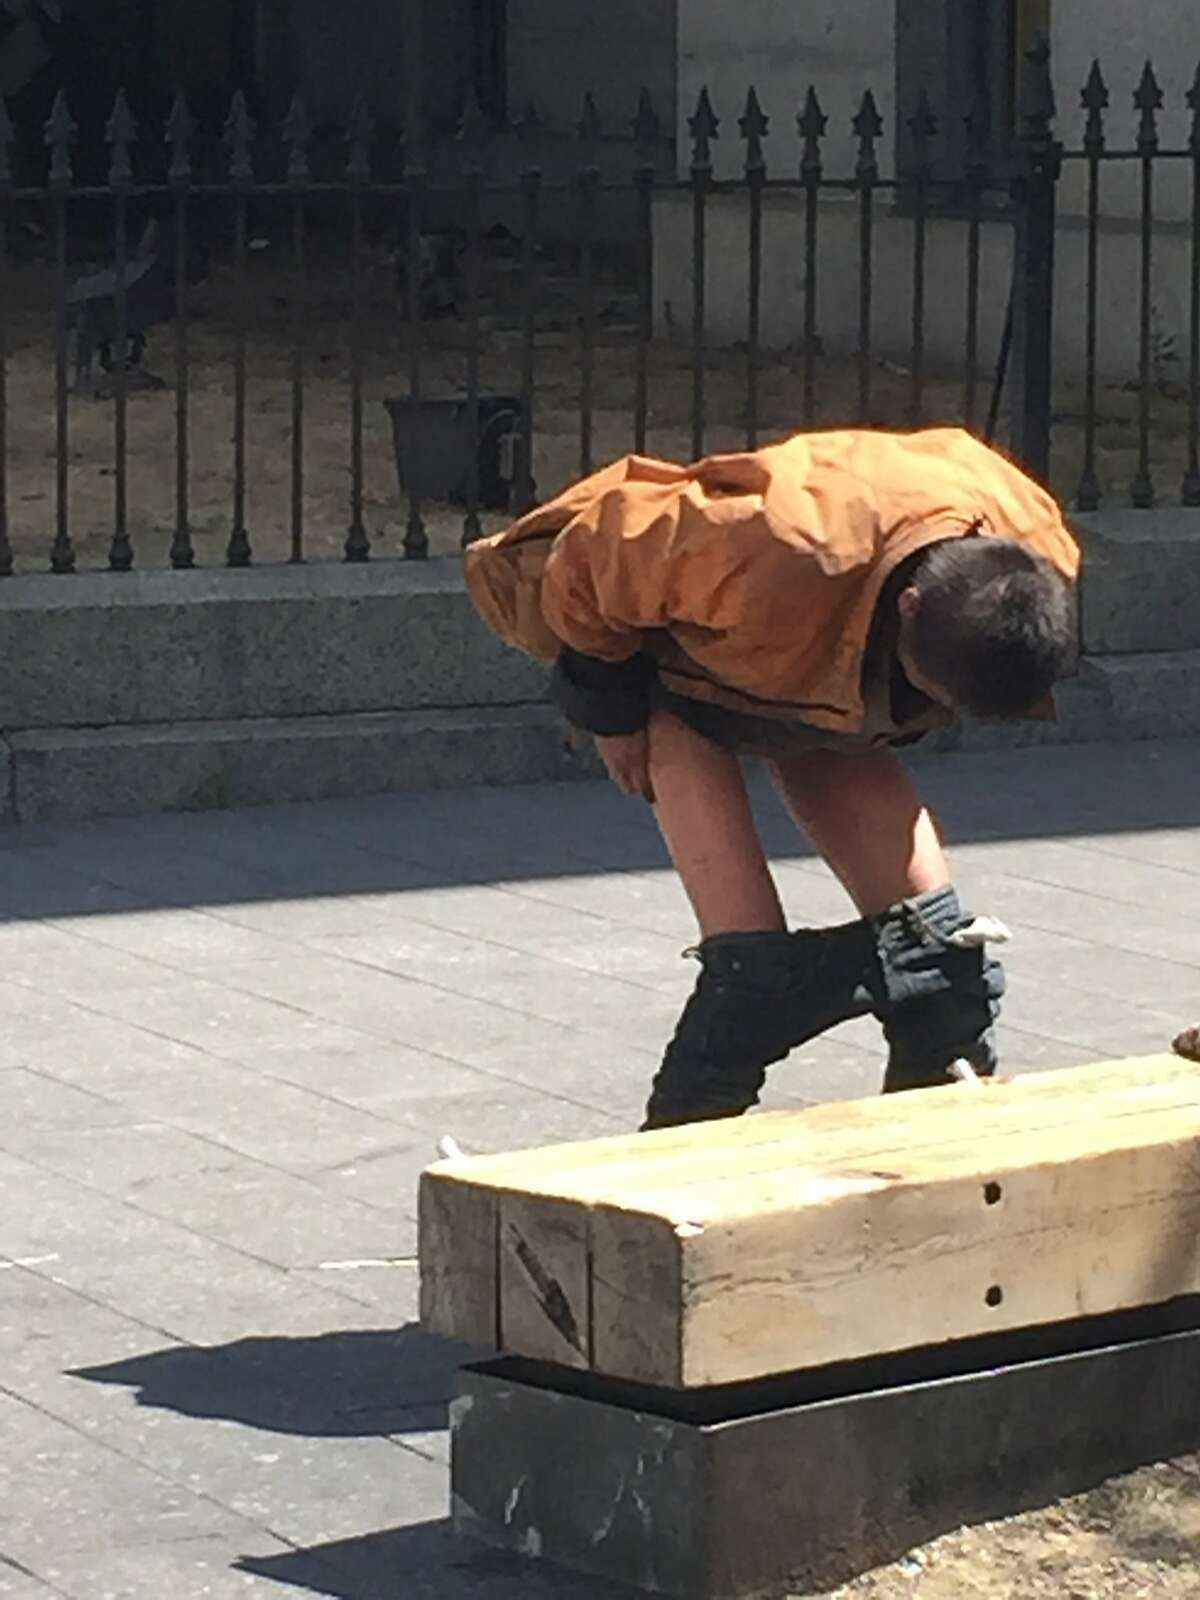 A homeless man squats to defecate at Mint Plaza, just off 5th Street, on Aug. 17